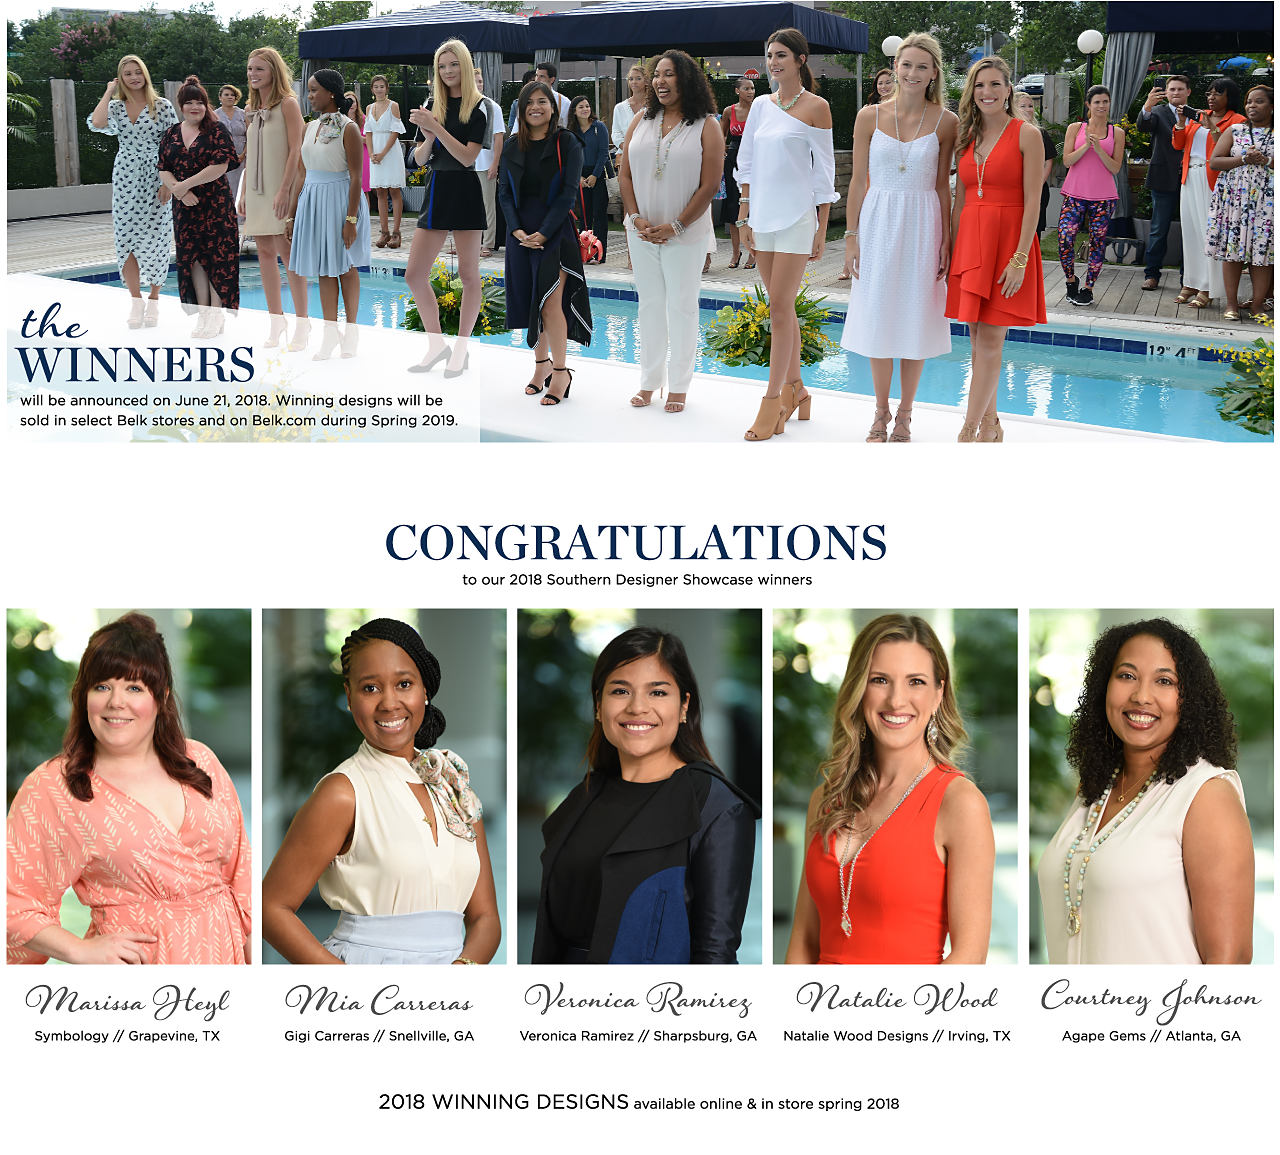 The winners will be announced on June 21, 2018. Winning designs will be sold in select Belk stores and on Belk.com during Spring 2019. Congratulations to our 2017 Southern Designer Showcase winners. Marissa Heyl. Symbology, Grapevine, TX. Mia Carreras. Gigi Carreras, Snellville, GA. Veronica Ramirez. Veronica Ramirez, Sharpsburg, GA. Natalie Wood. Natalie Wood Designs, Irving, TX. Courtney Johnson. Gigi Carreras, Atlanta, GA. 2017 winning designs available online & in store spring 2018.